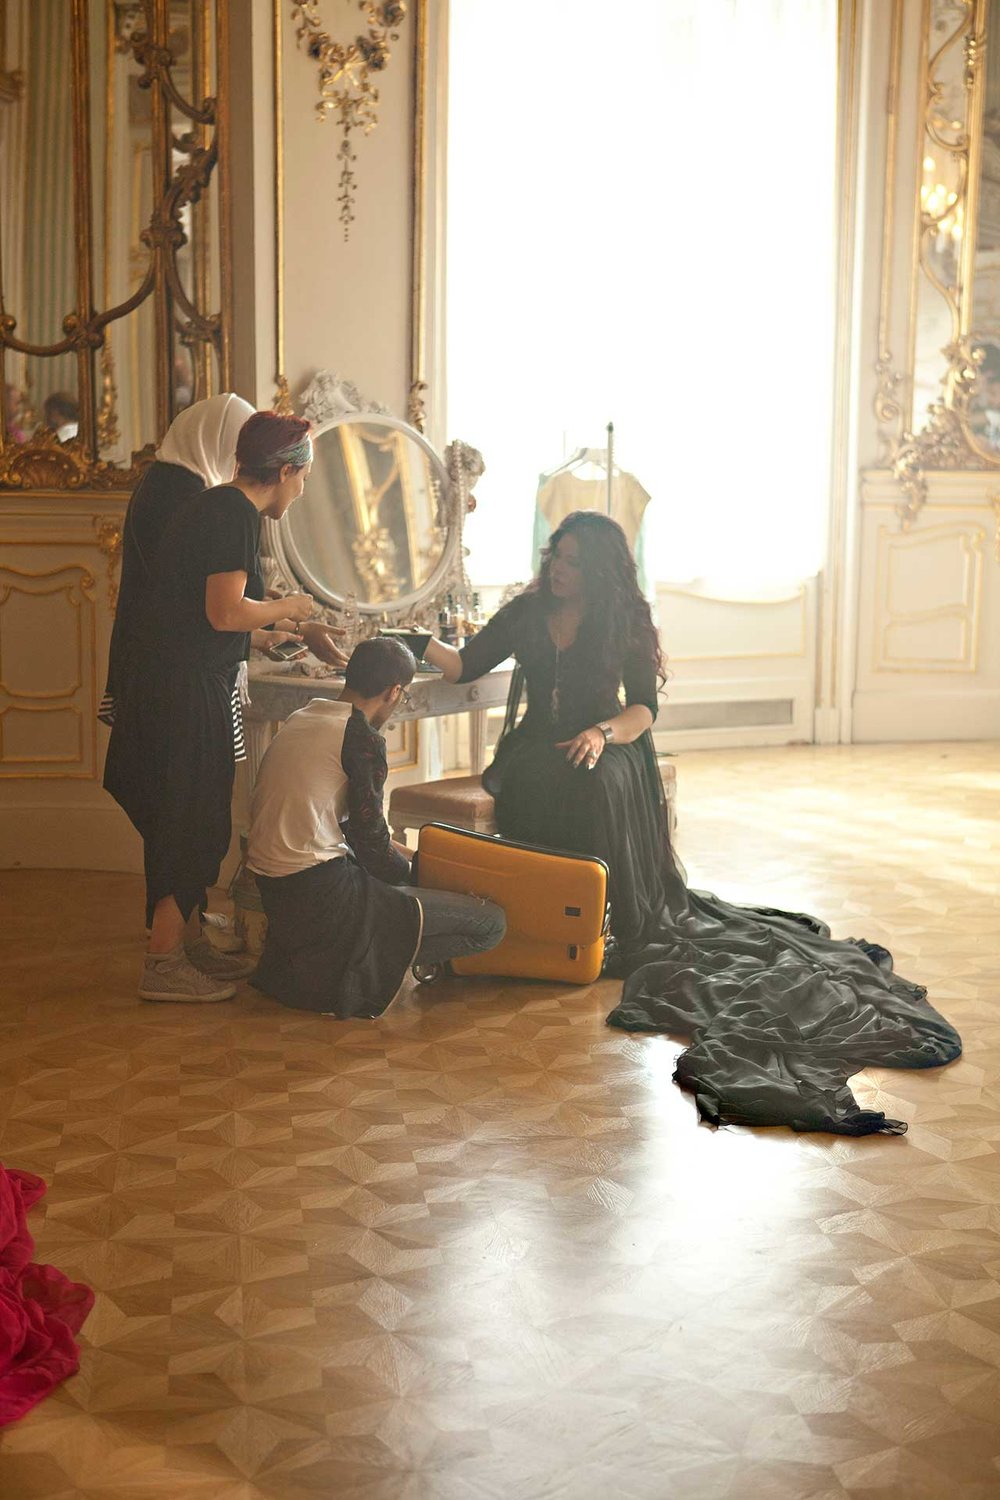 Ahlam_behind_the_scenes044.JPG